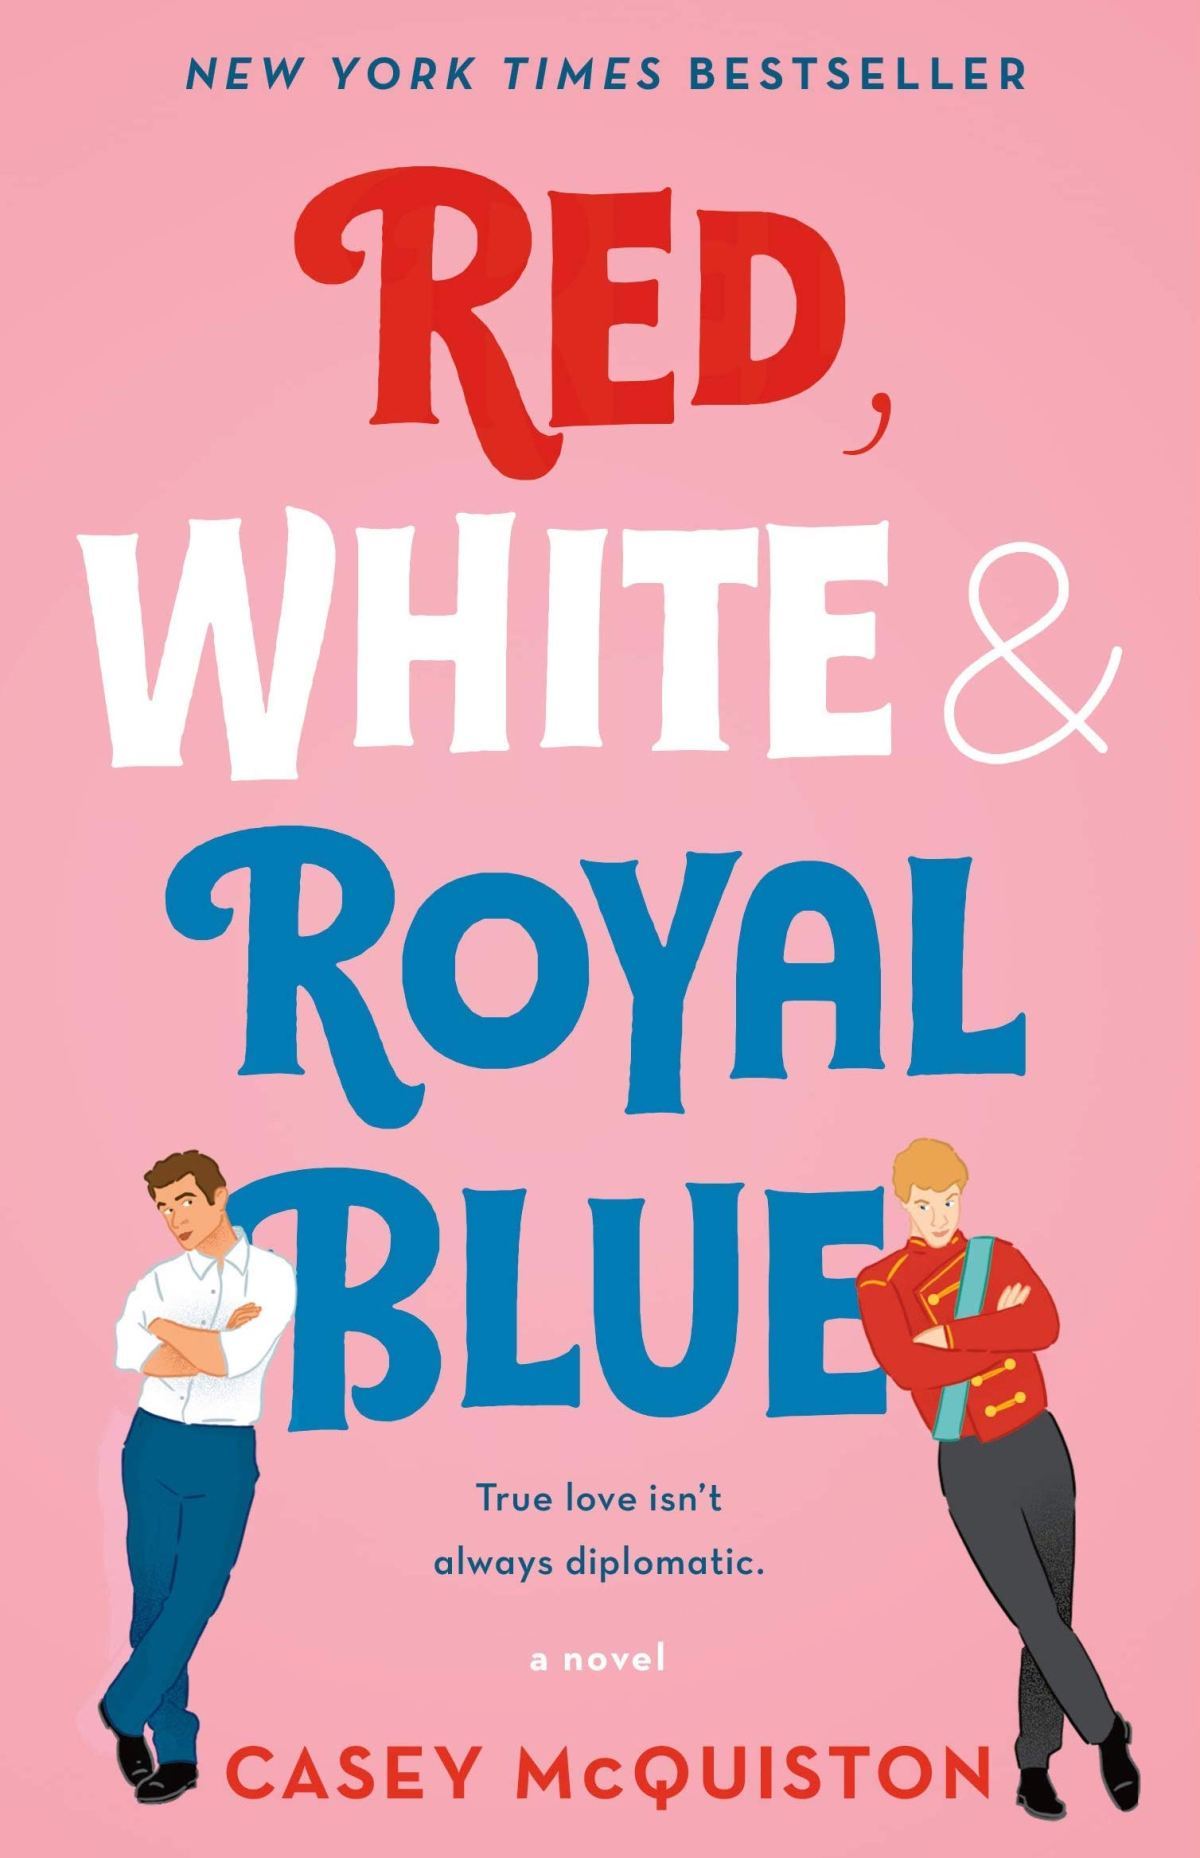 Casey McQuiston - Red, White, & Royal Blue